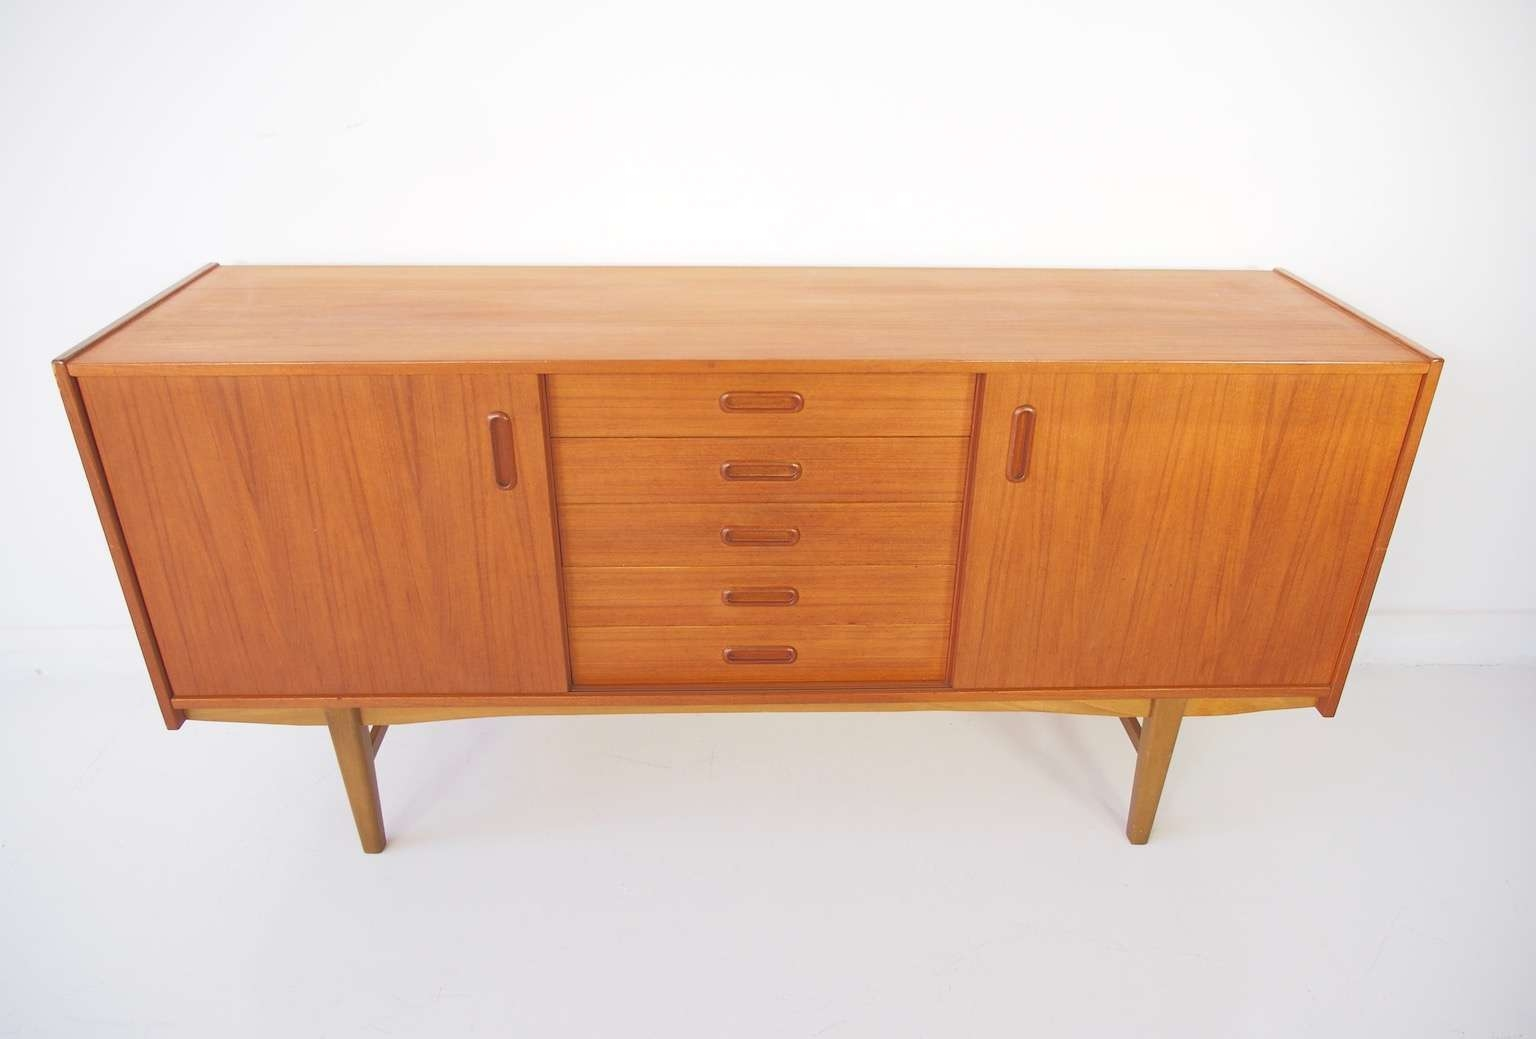 Scandinavian Modern Teak Sideboard With Shelves And Drawers, 1960S Within Scandinavian Sideboards (View 10 of 20)